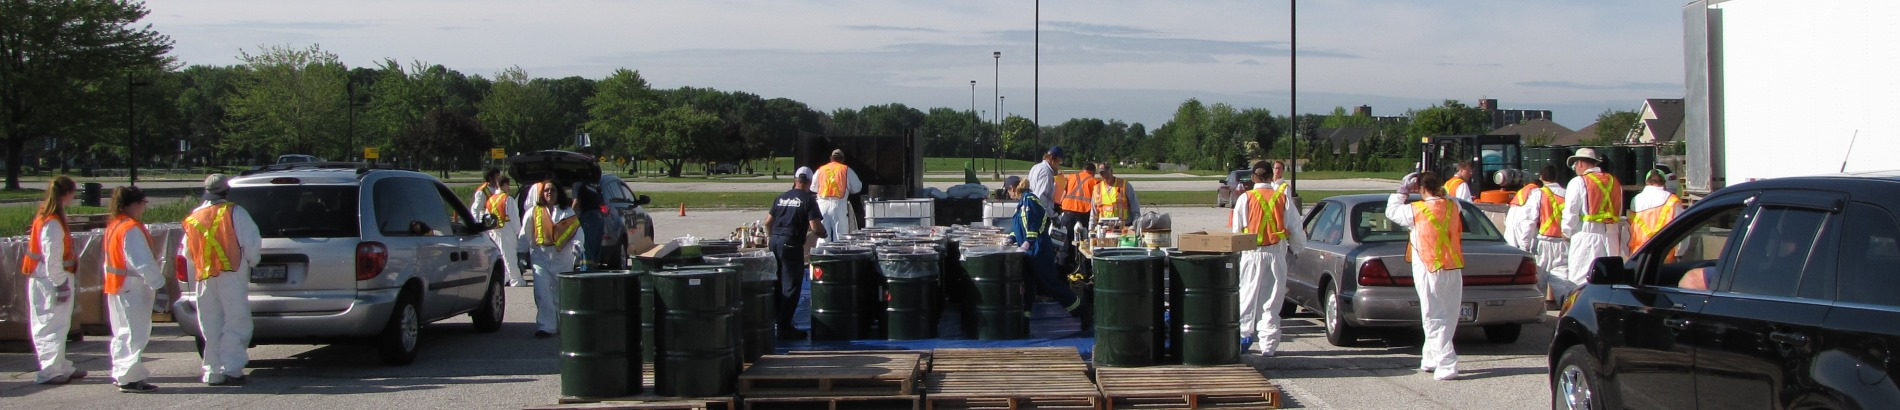 Residents dropping off items at mobile household hazardous waste depot